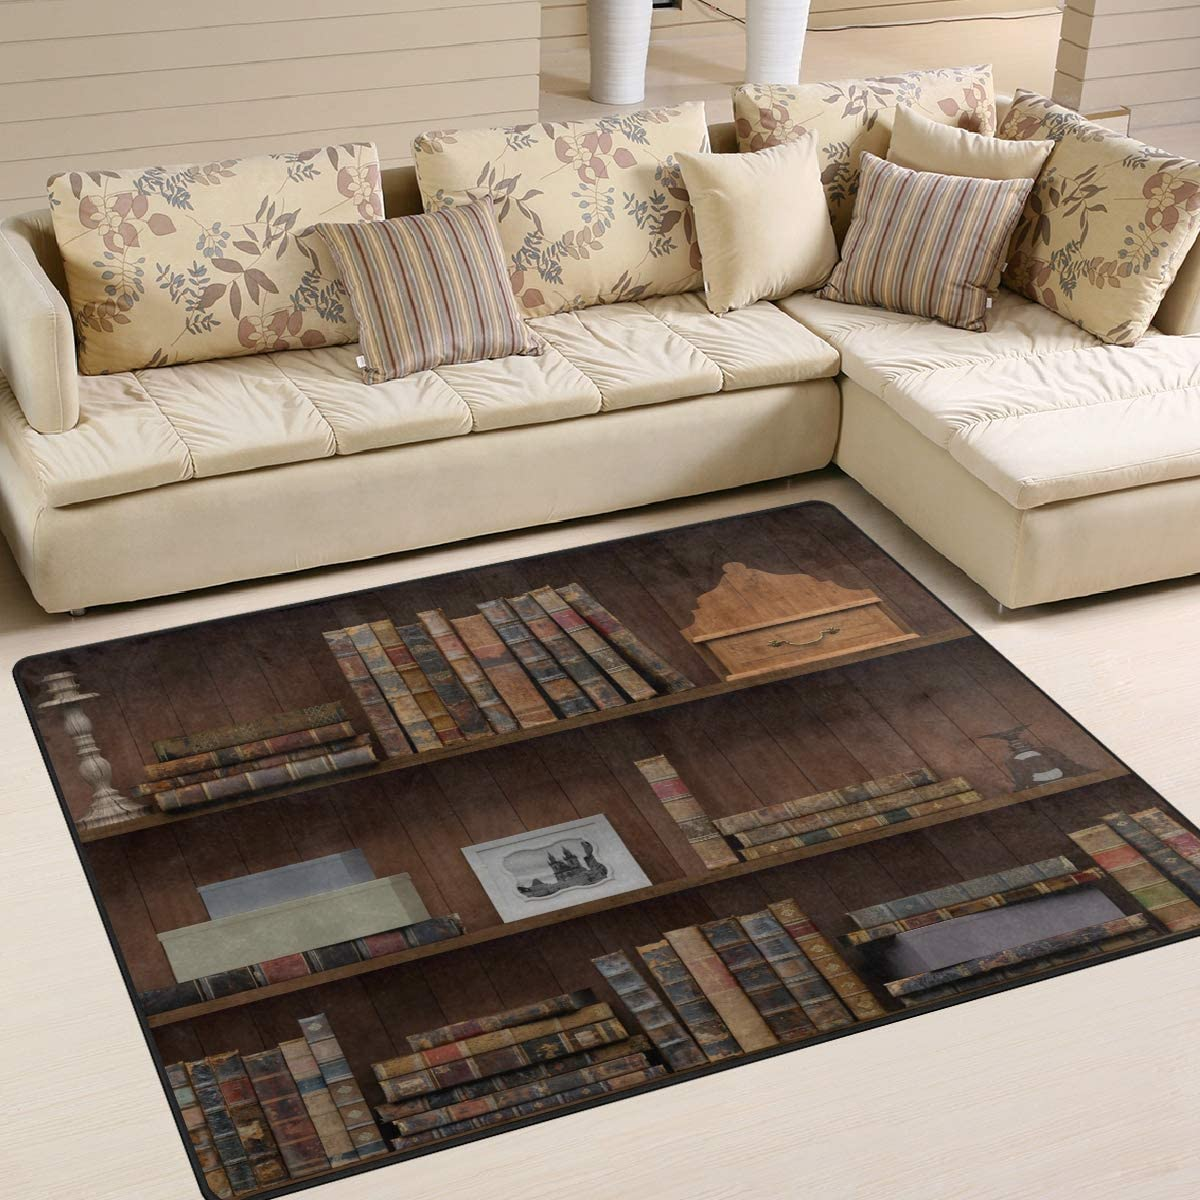 New products, world's highest quality popular! ALAZA Vintage Library Bookshelf Bookworm for Rugs Area Livin Rug supreme